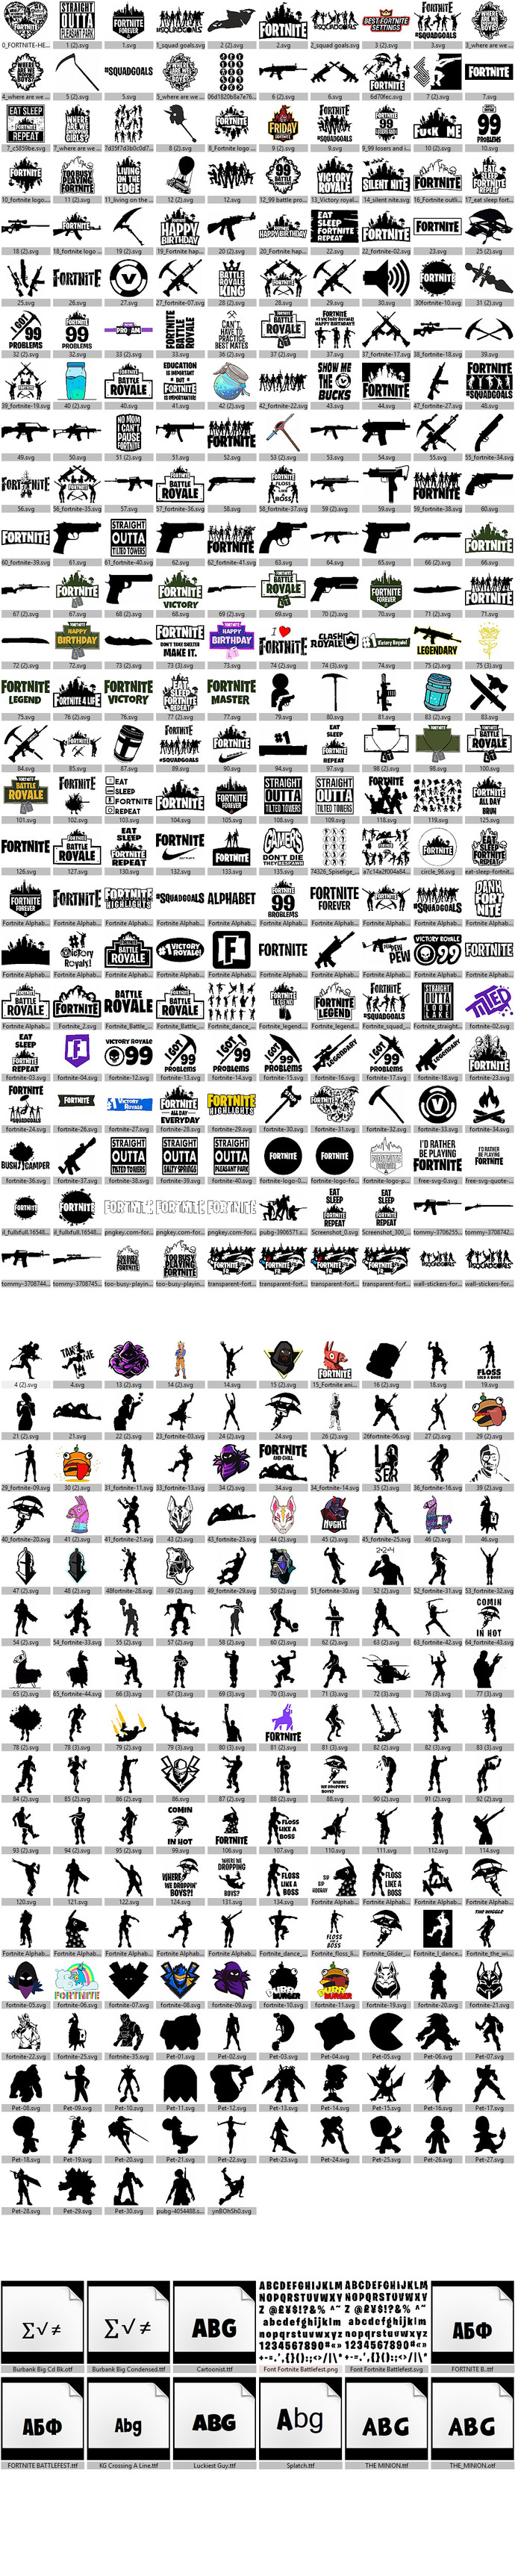 Fortnite Clipart for Scrapbooking, Craft, Cutting